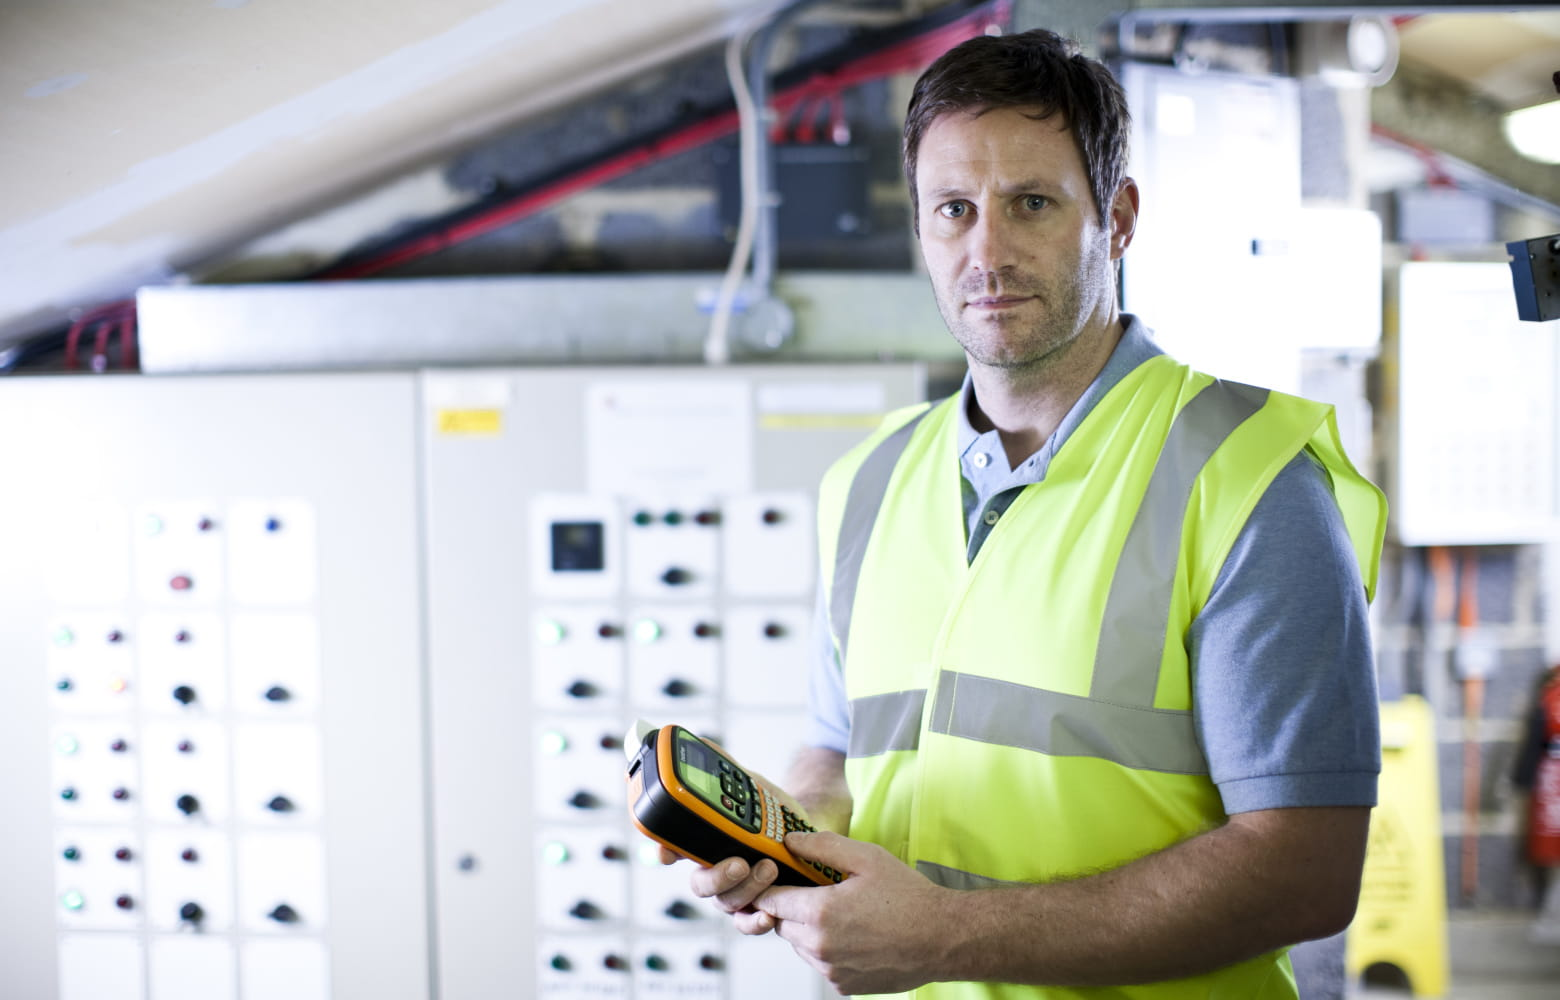 Male electrician in front of a distribution board, holding a Brother P-touch label printer